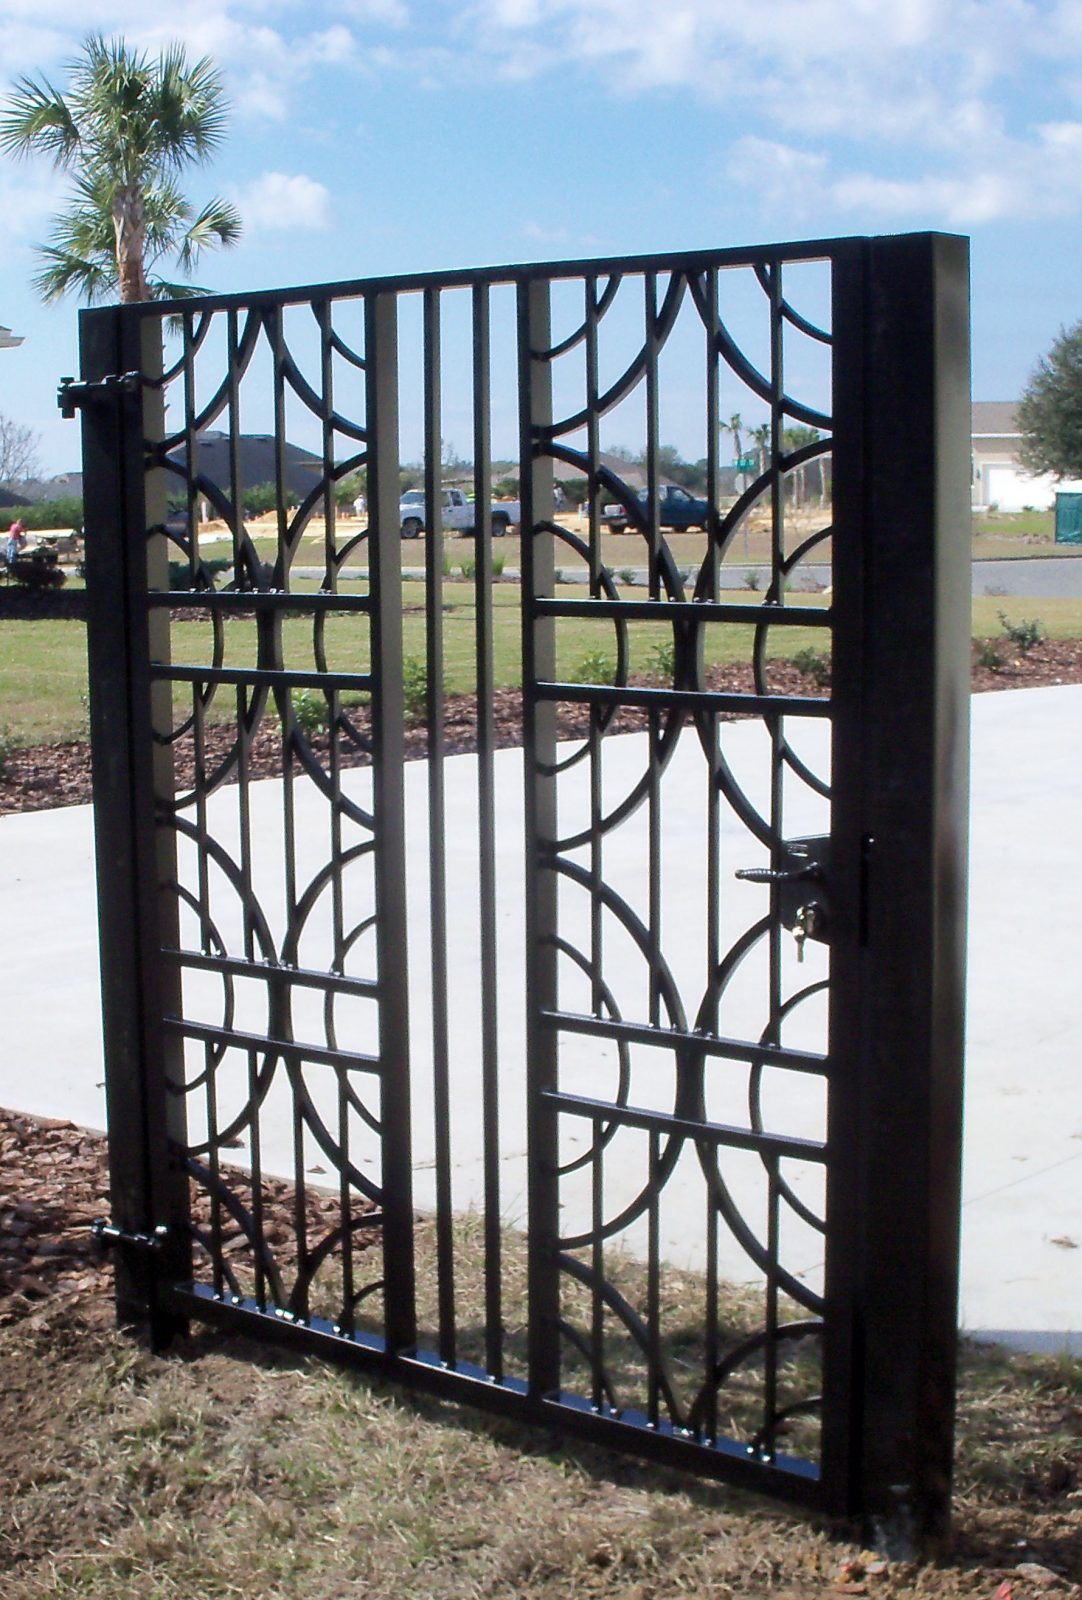 Garden Courtyard & Wine Cellar Gates Metal fabrication